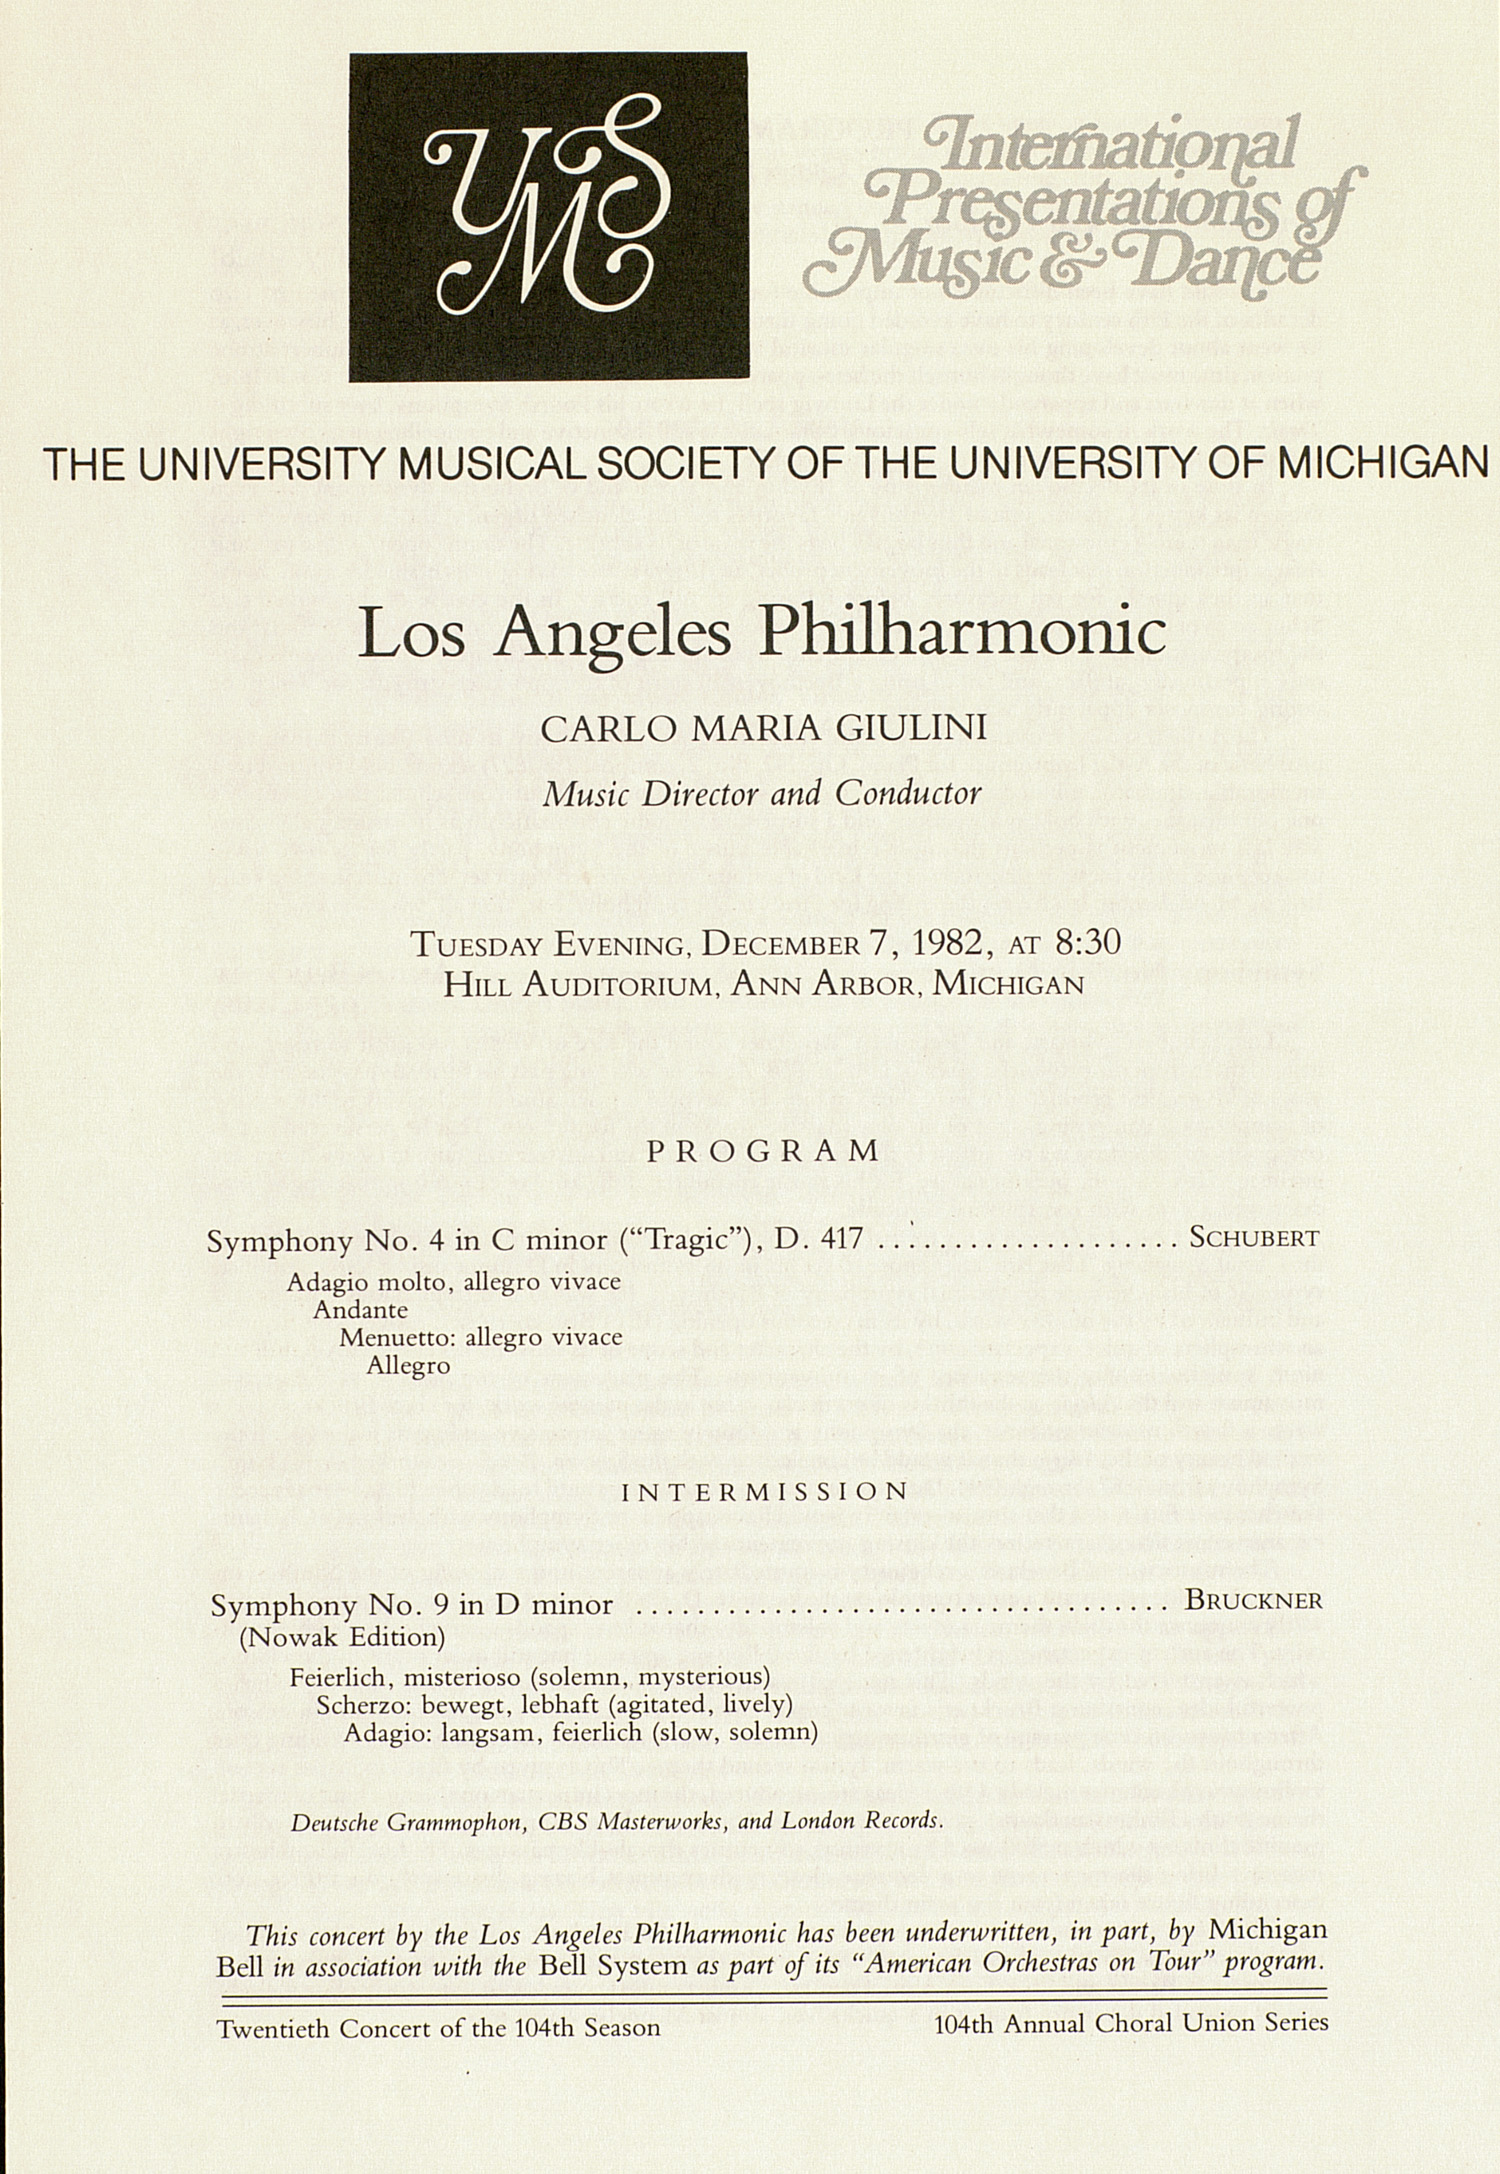 UMS Concert Program, December 7, 1982: Los Angeles Philharmonic --  image